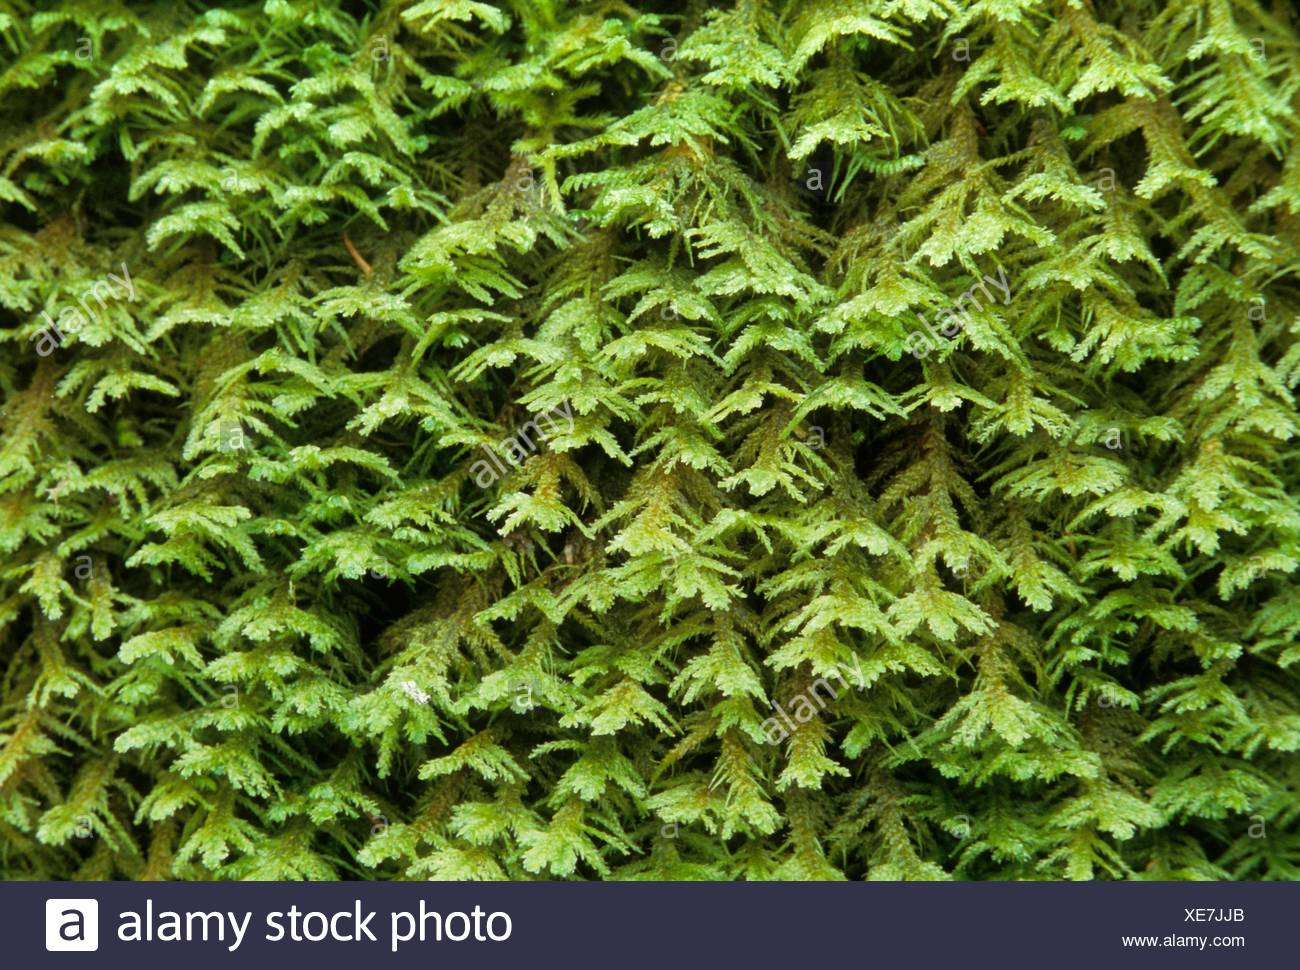 Club moss along Woodpecker Loop Trail, William Finley National Wildlife Refuge, Oregon. - Stock Image